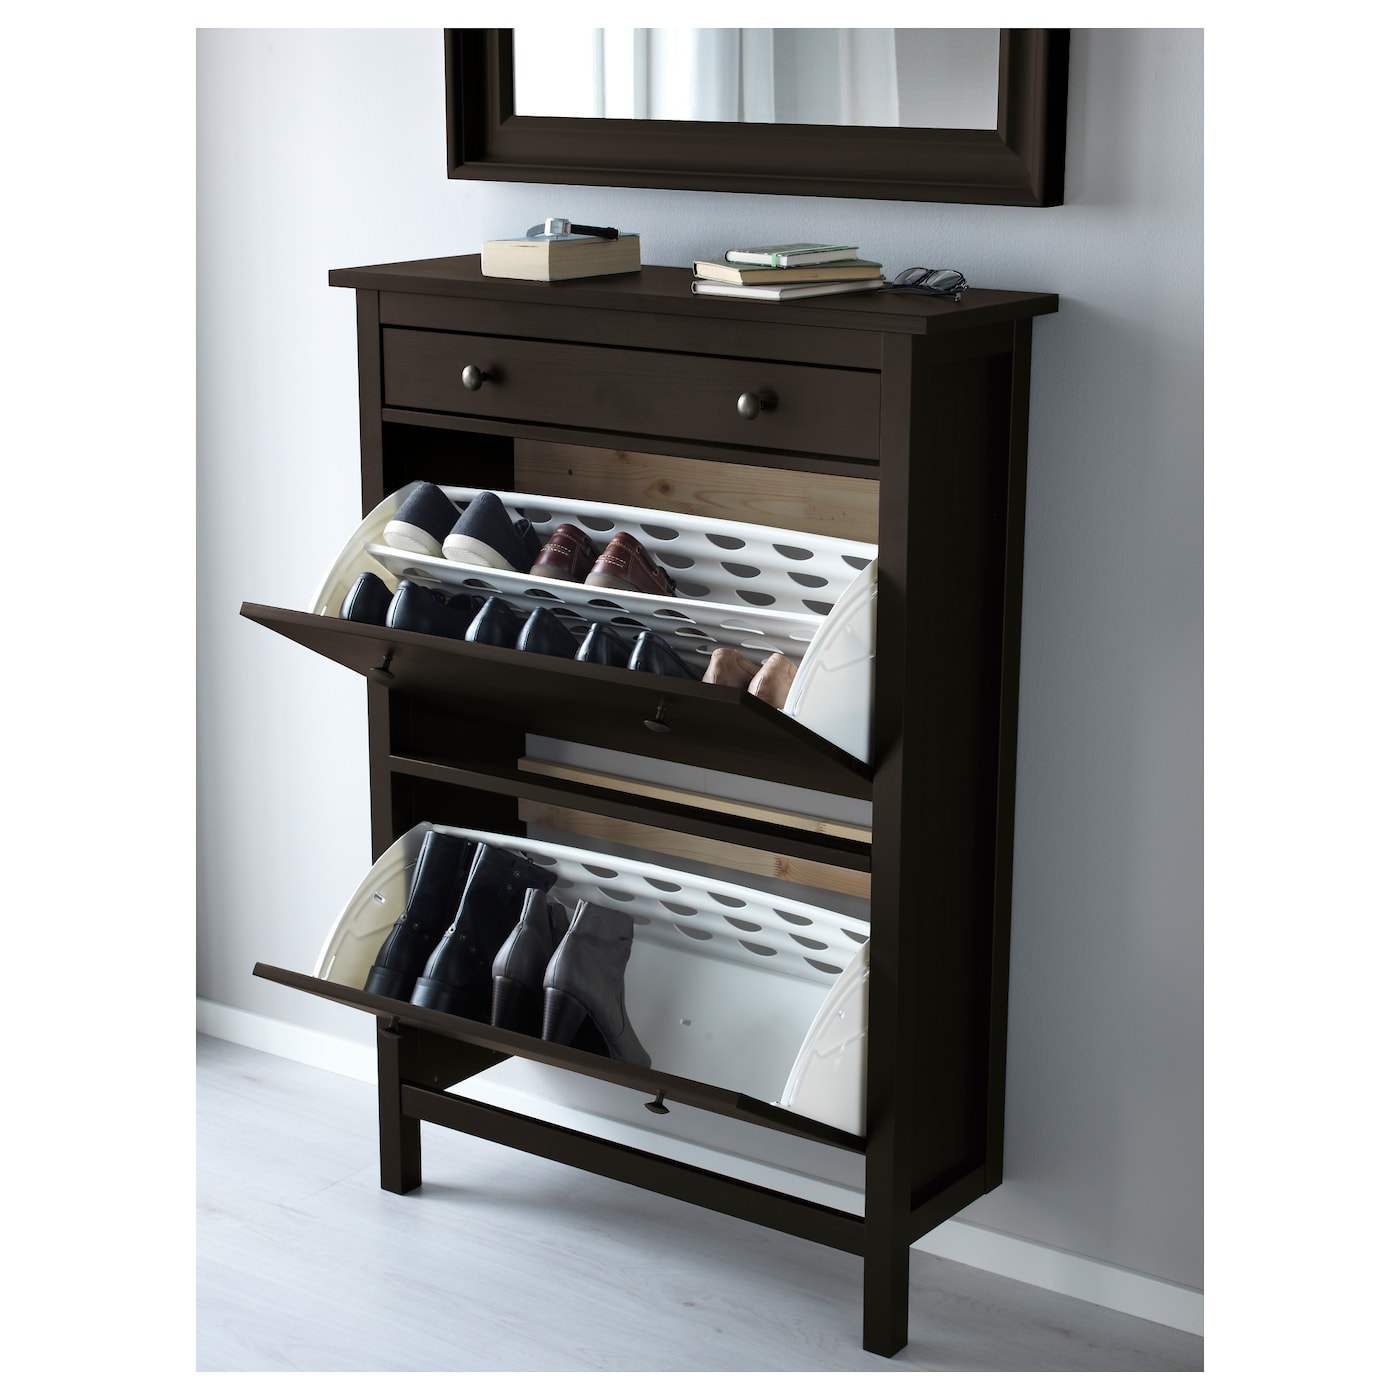 hemnes shoe cabinet with 2 compartments black brown 89x127 cm ikea